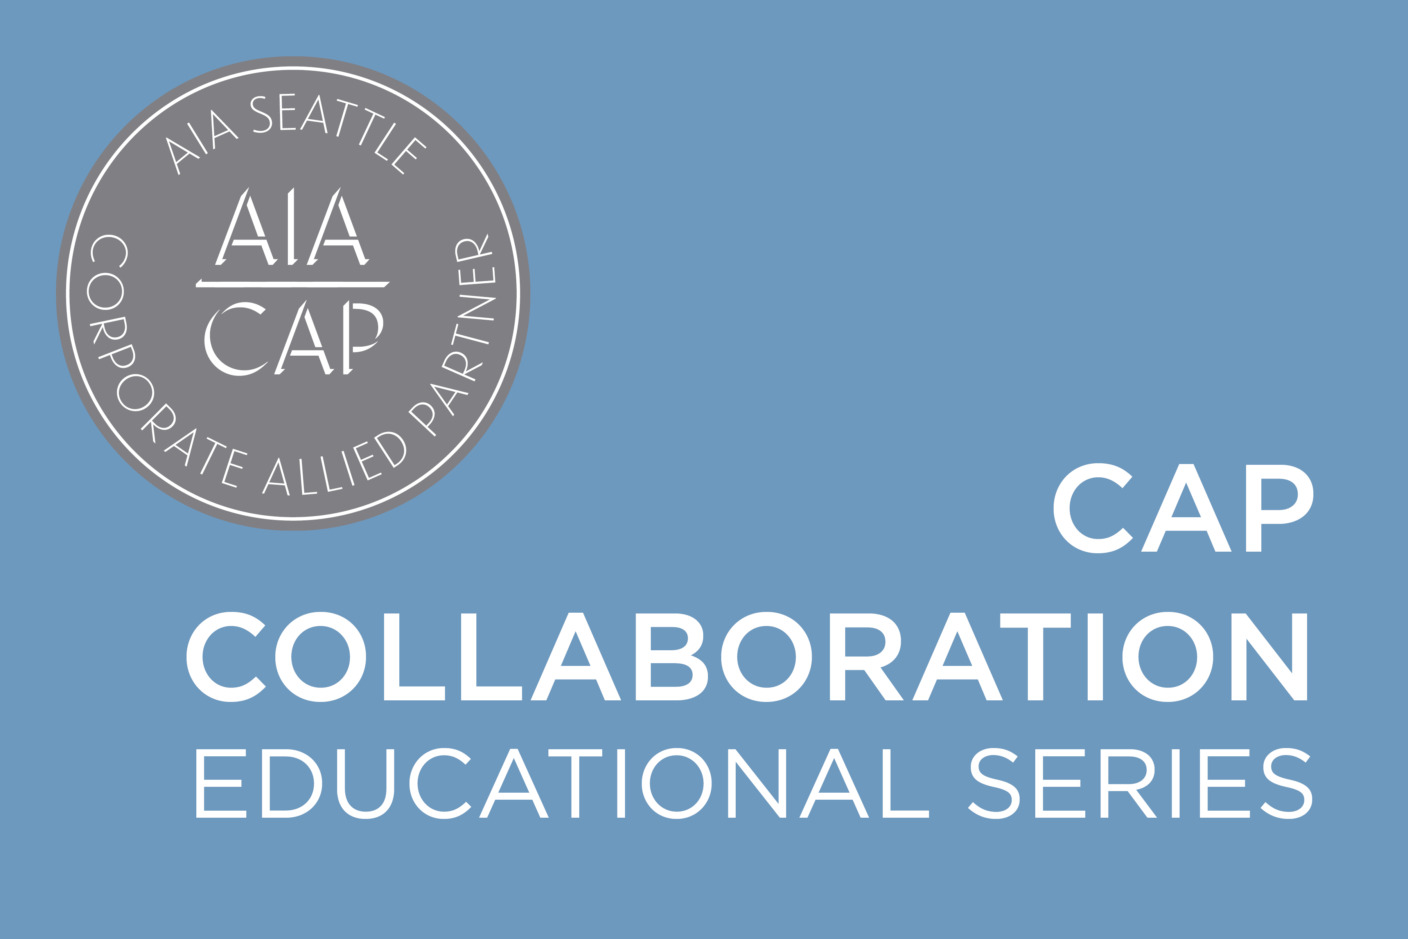 This page is intended only for participants of CAP Collaboration Educational Series: Practice Management.